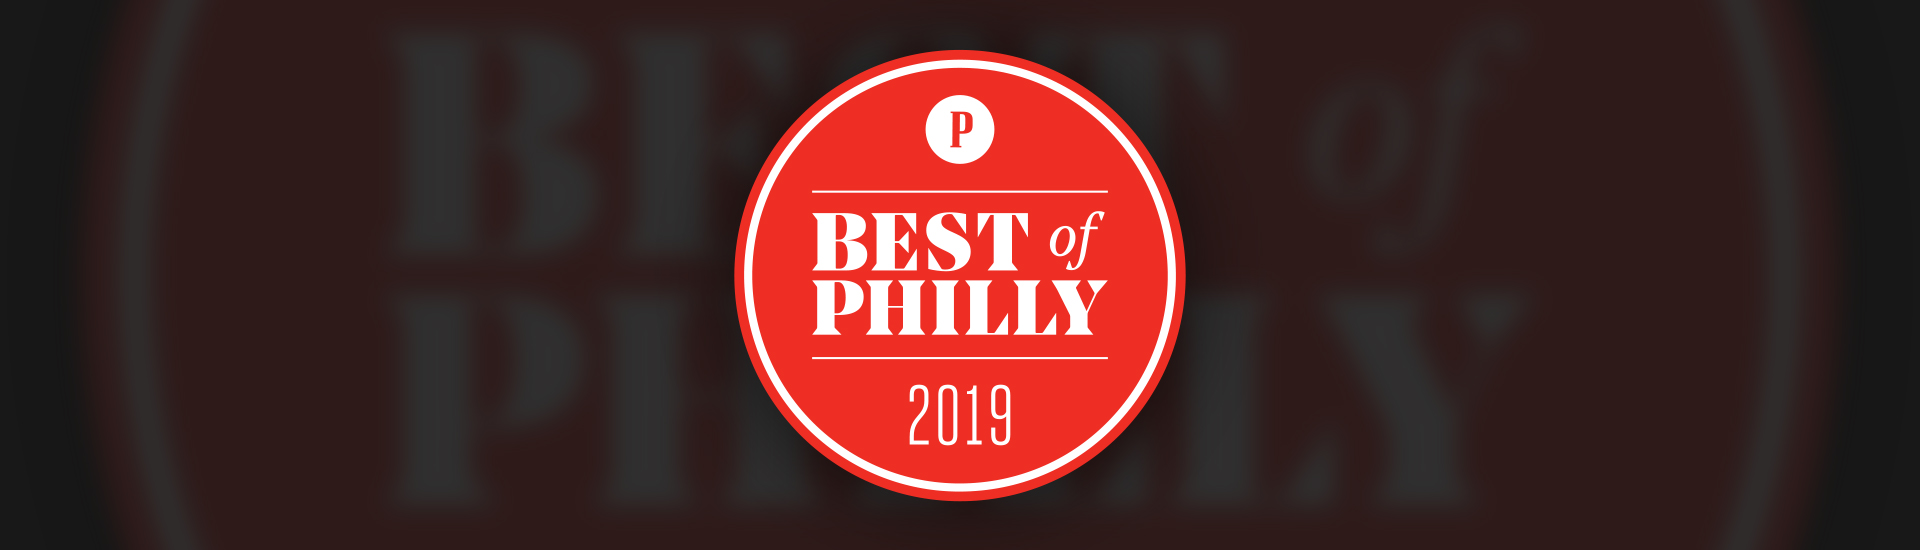 20190812 best of philly blog post